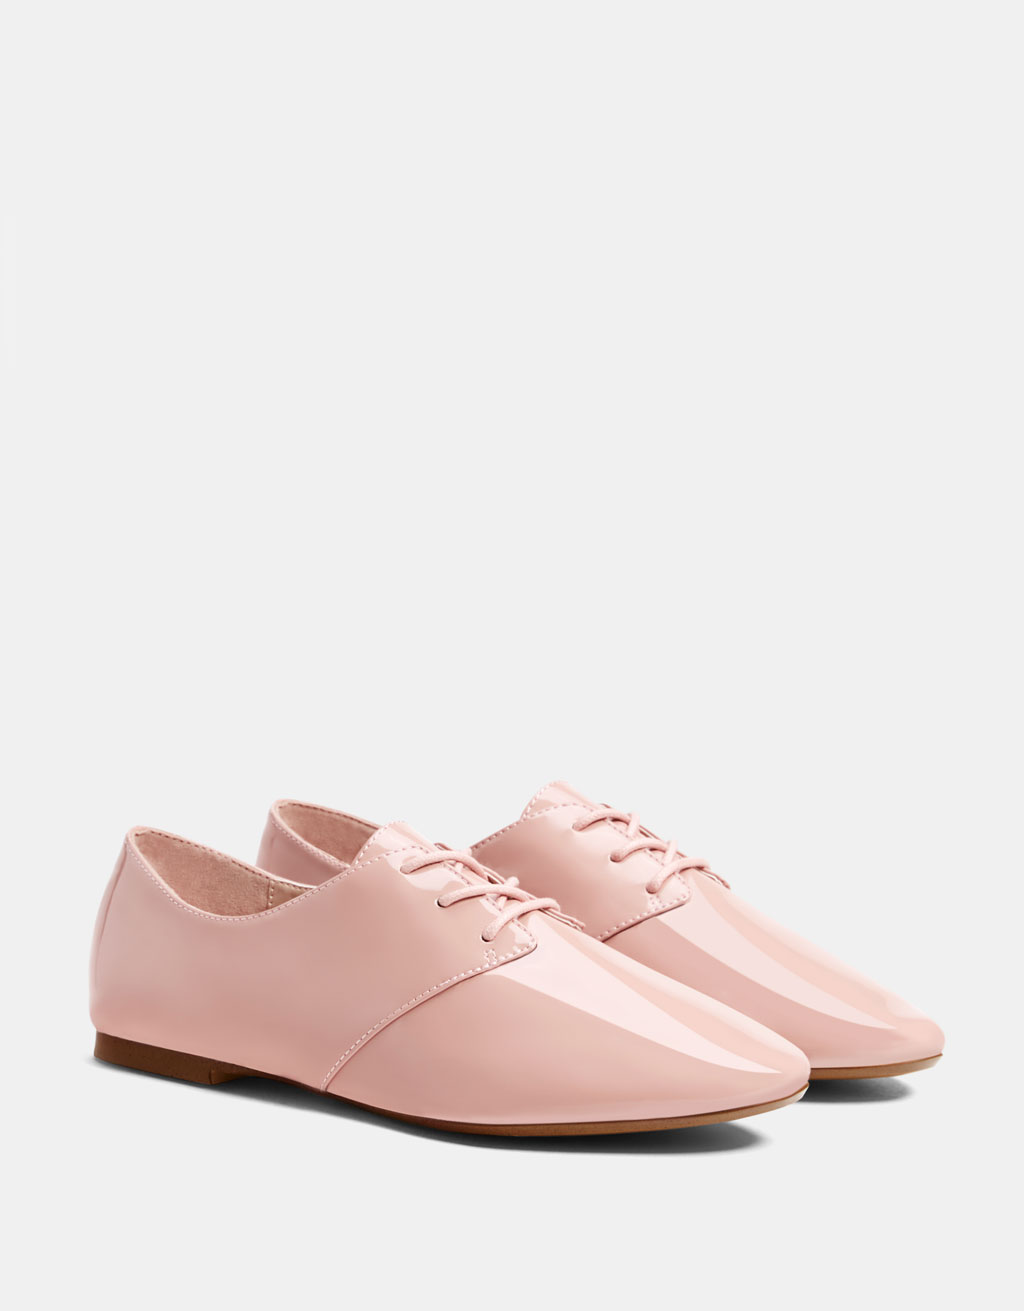 Pink patent leather blucher shoe